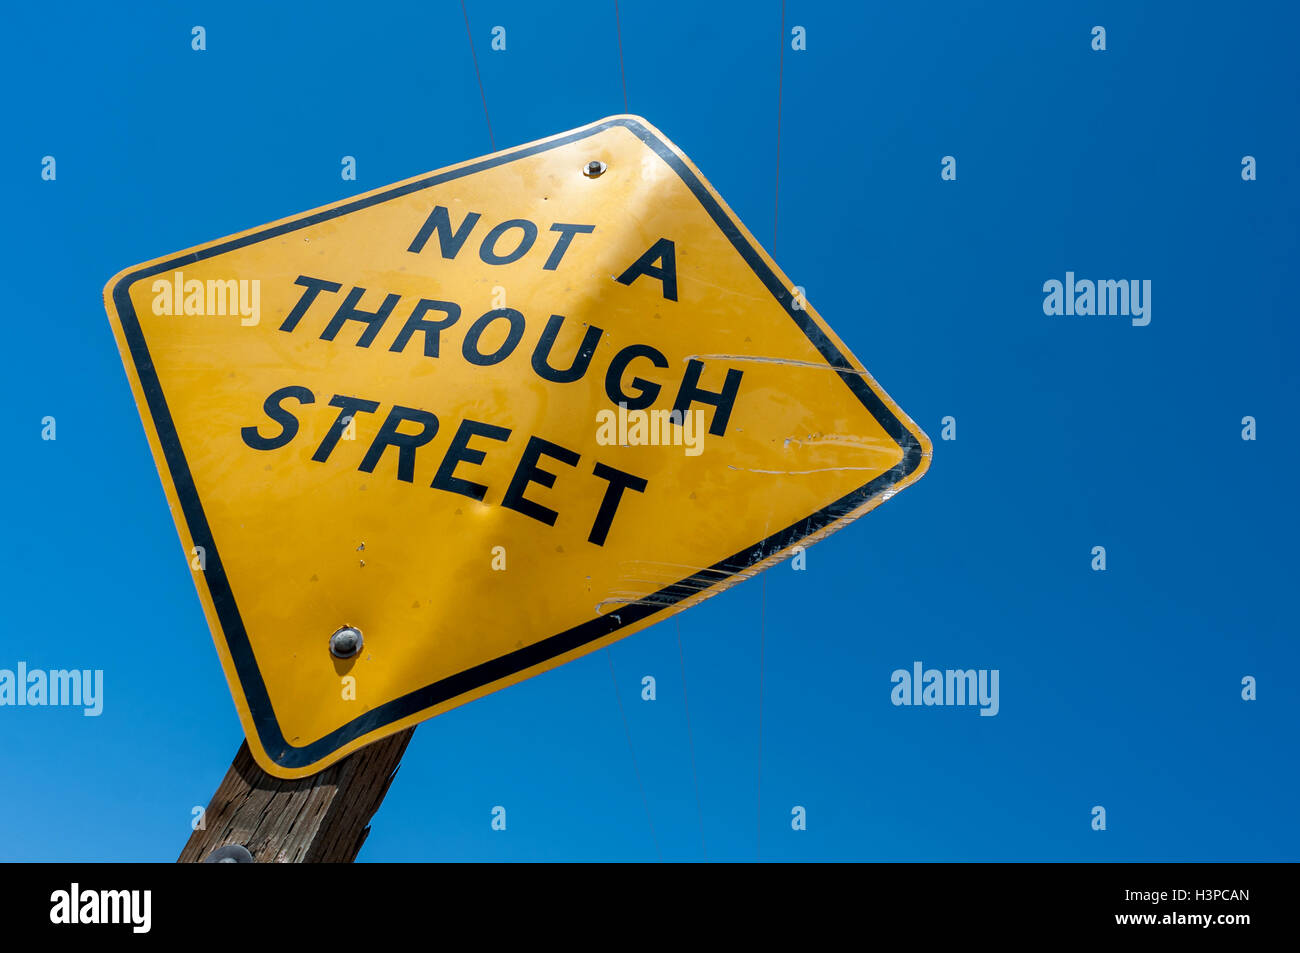 Traffic signage in eastern California - Stock Image